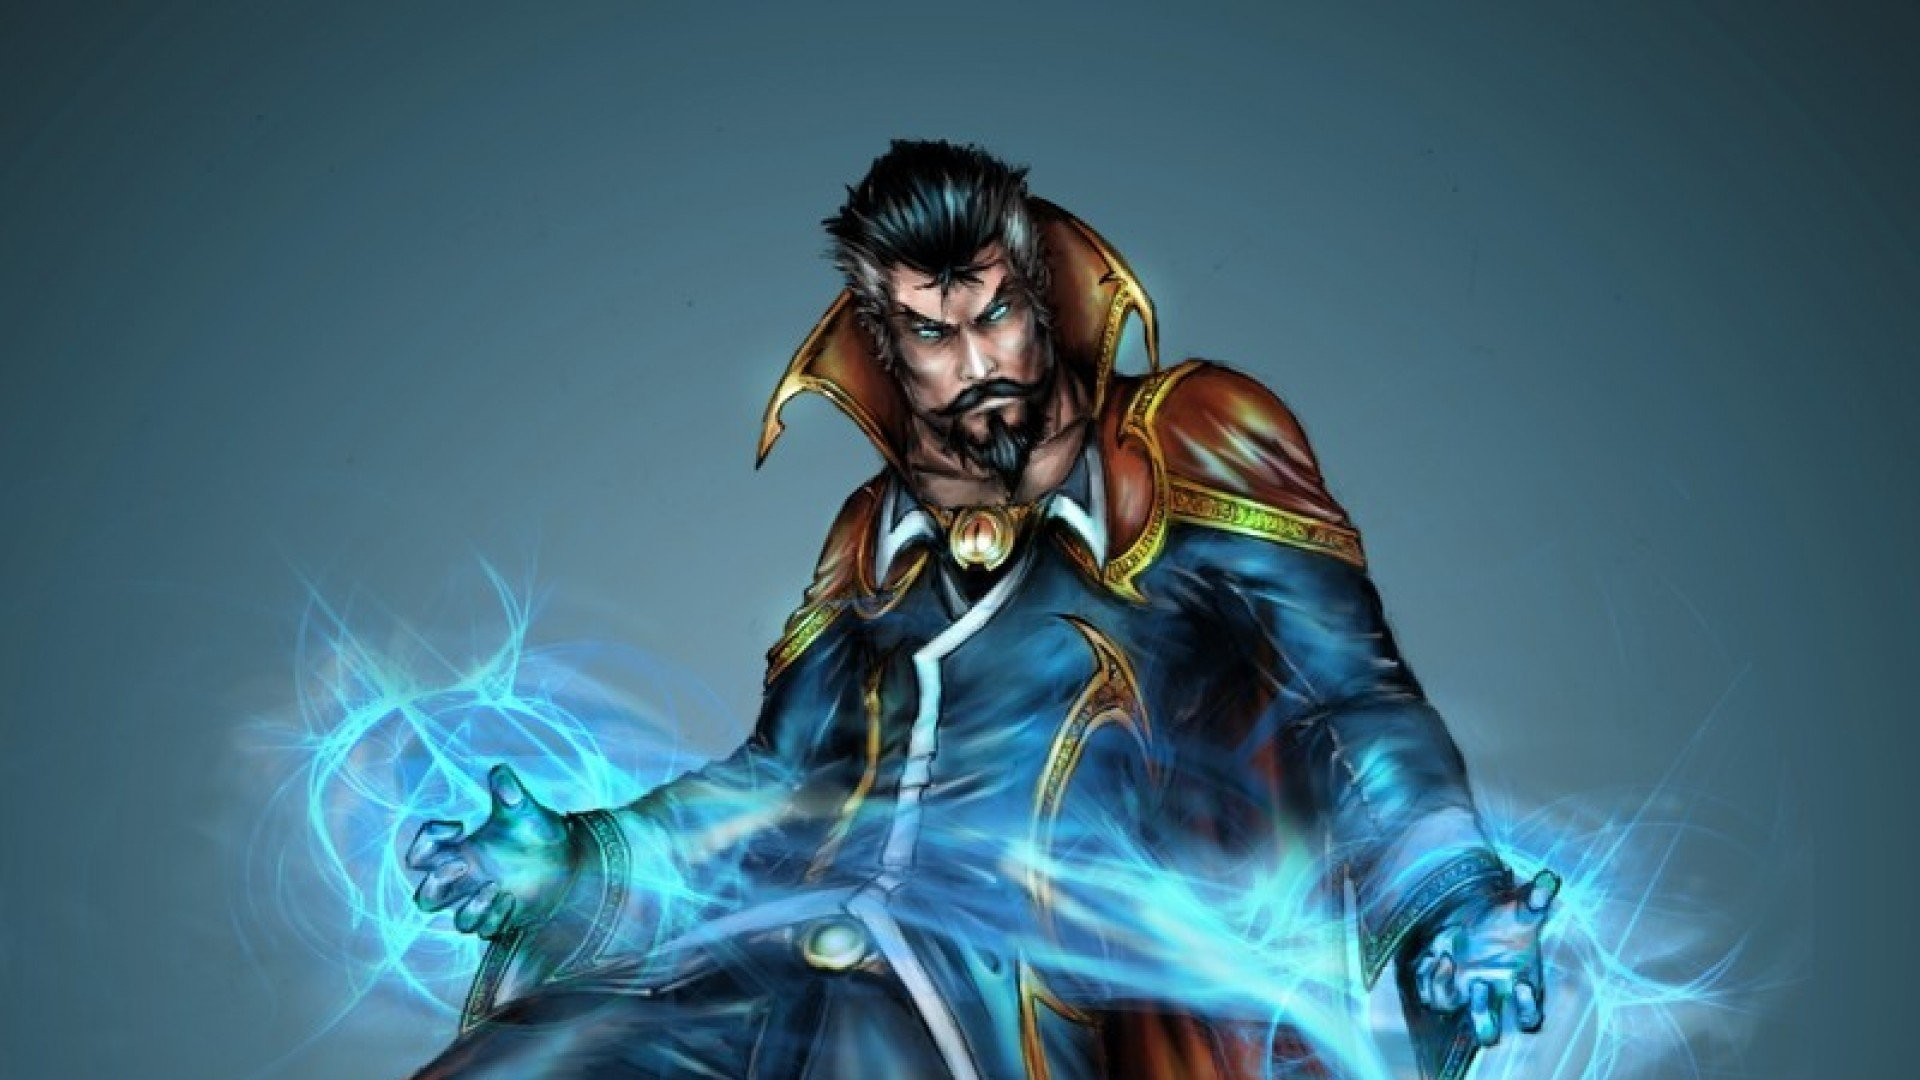 1920x1080 ... doctor strange running time and movie wallpapers movie hd wallpapers ...